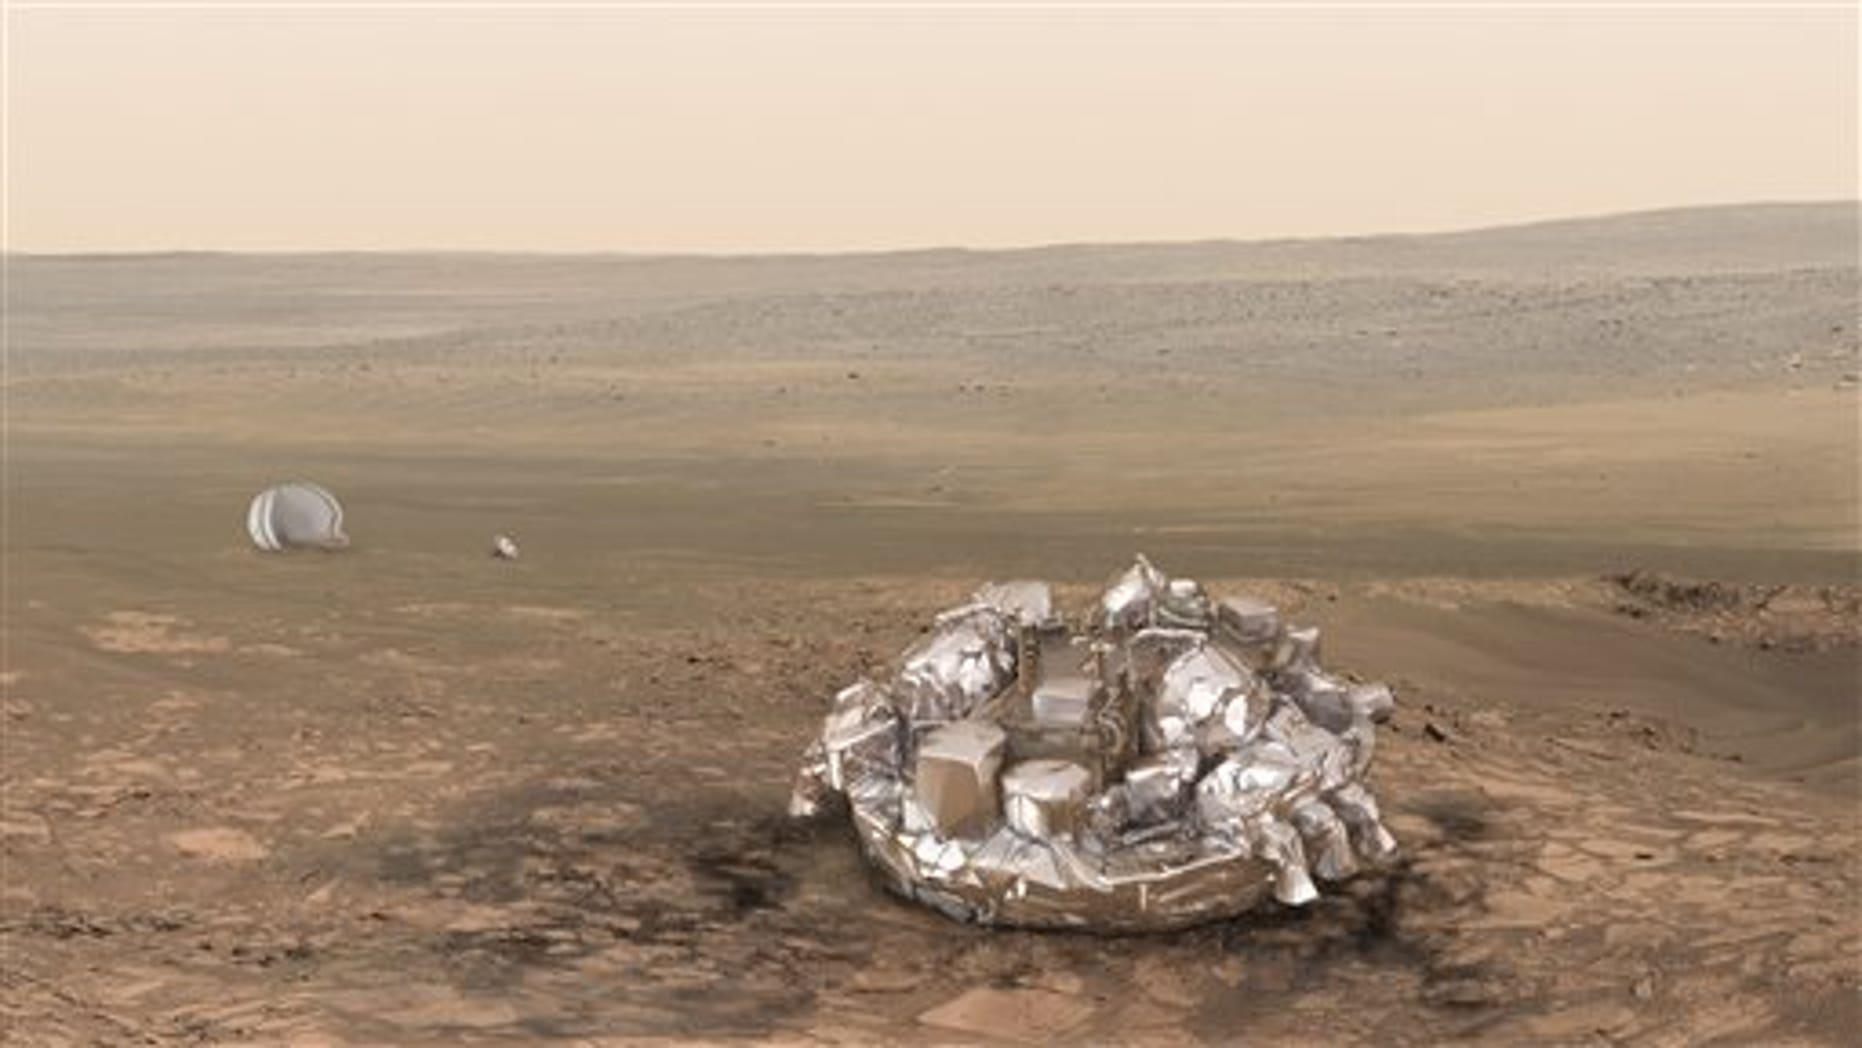 Artist impression of the Schiaparelli module on the surface of Mars provided by the European Space Agency, ESA.